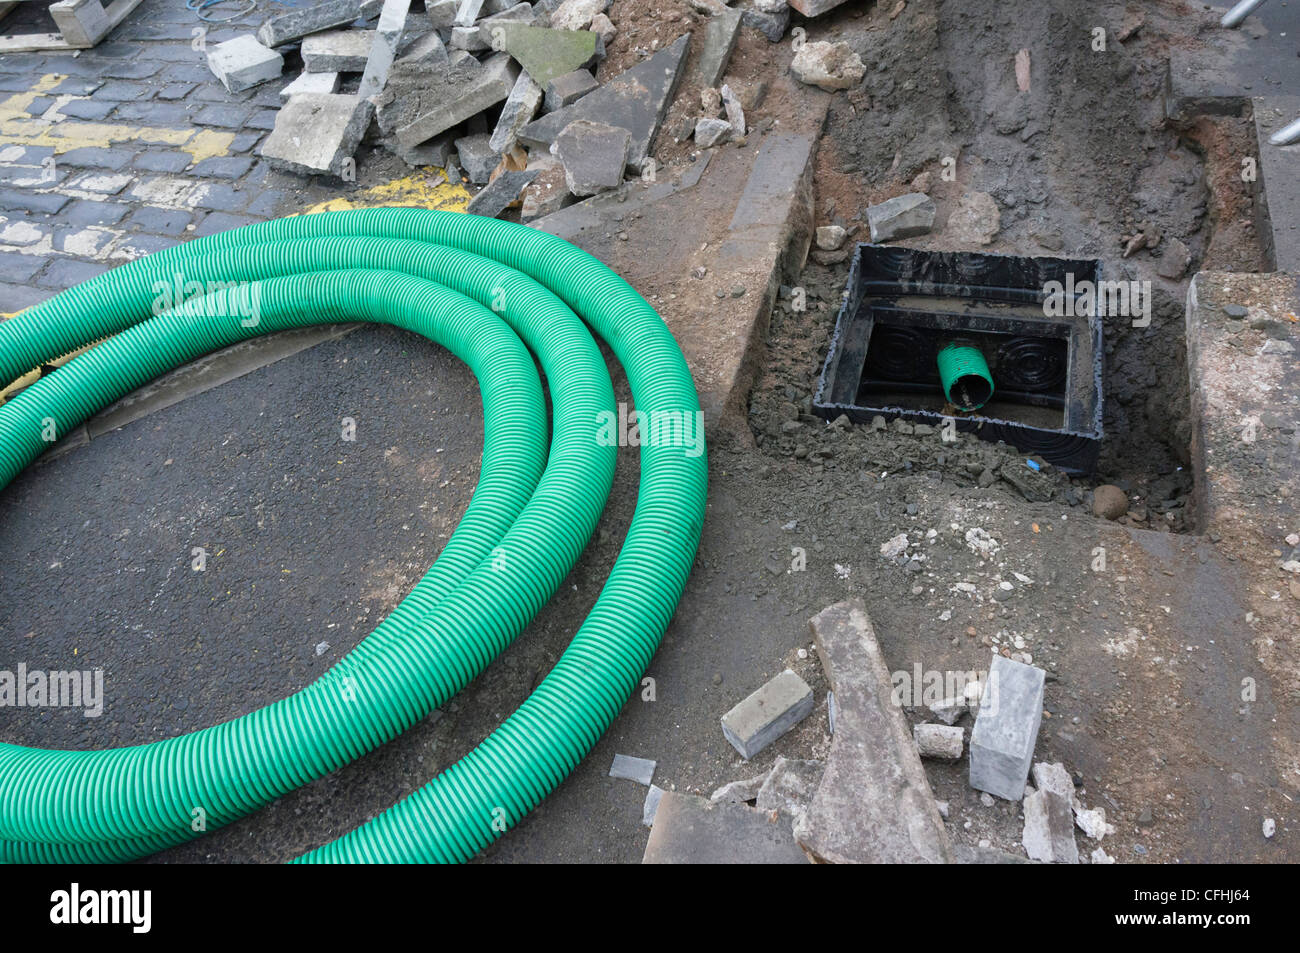 Plastic Underground Pipe Stock Photos Electrical Wiring Pipes Water Services Excavation To Install New Flexible Sewerage In A Scottish Town